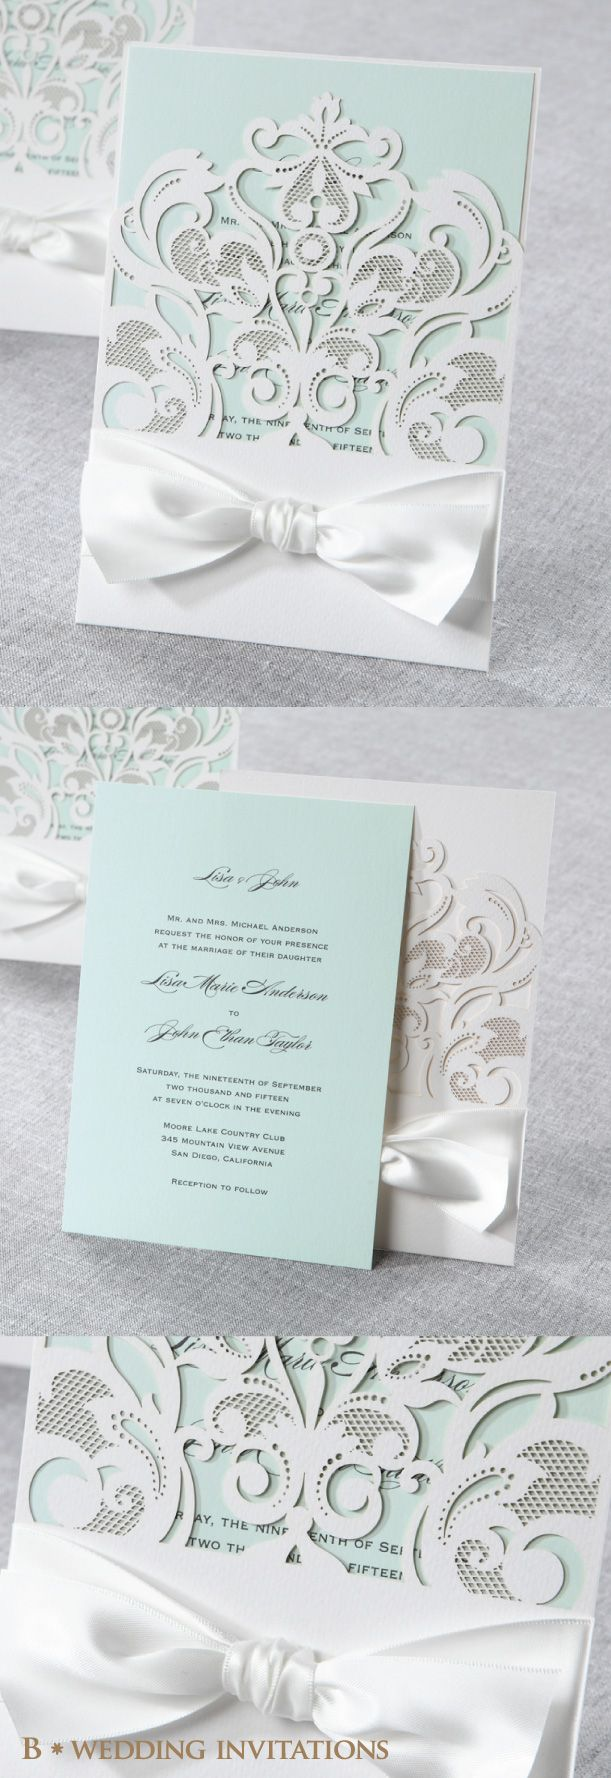 Classy Laser Cut Wedding Stationery with White Bow by B Wedding Invitations